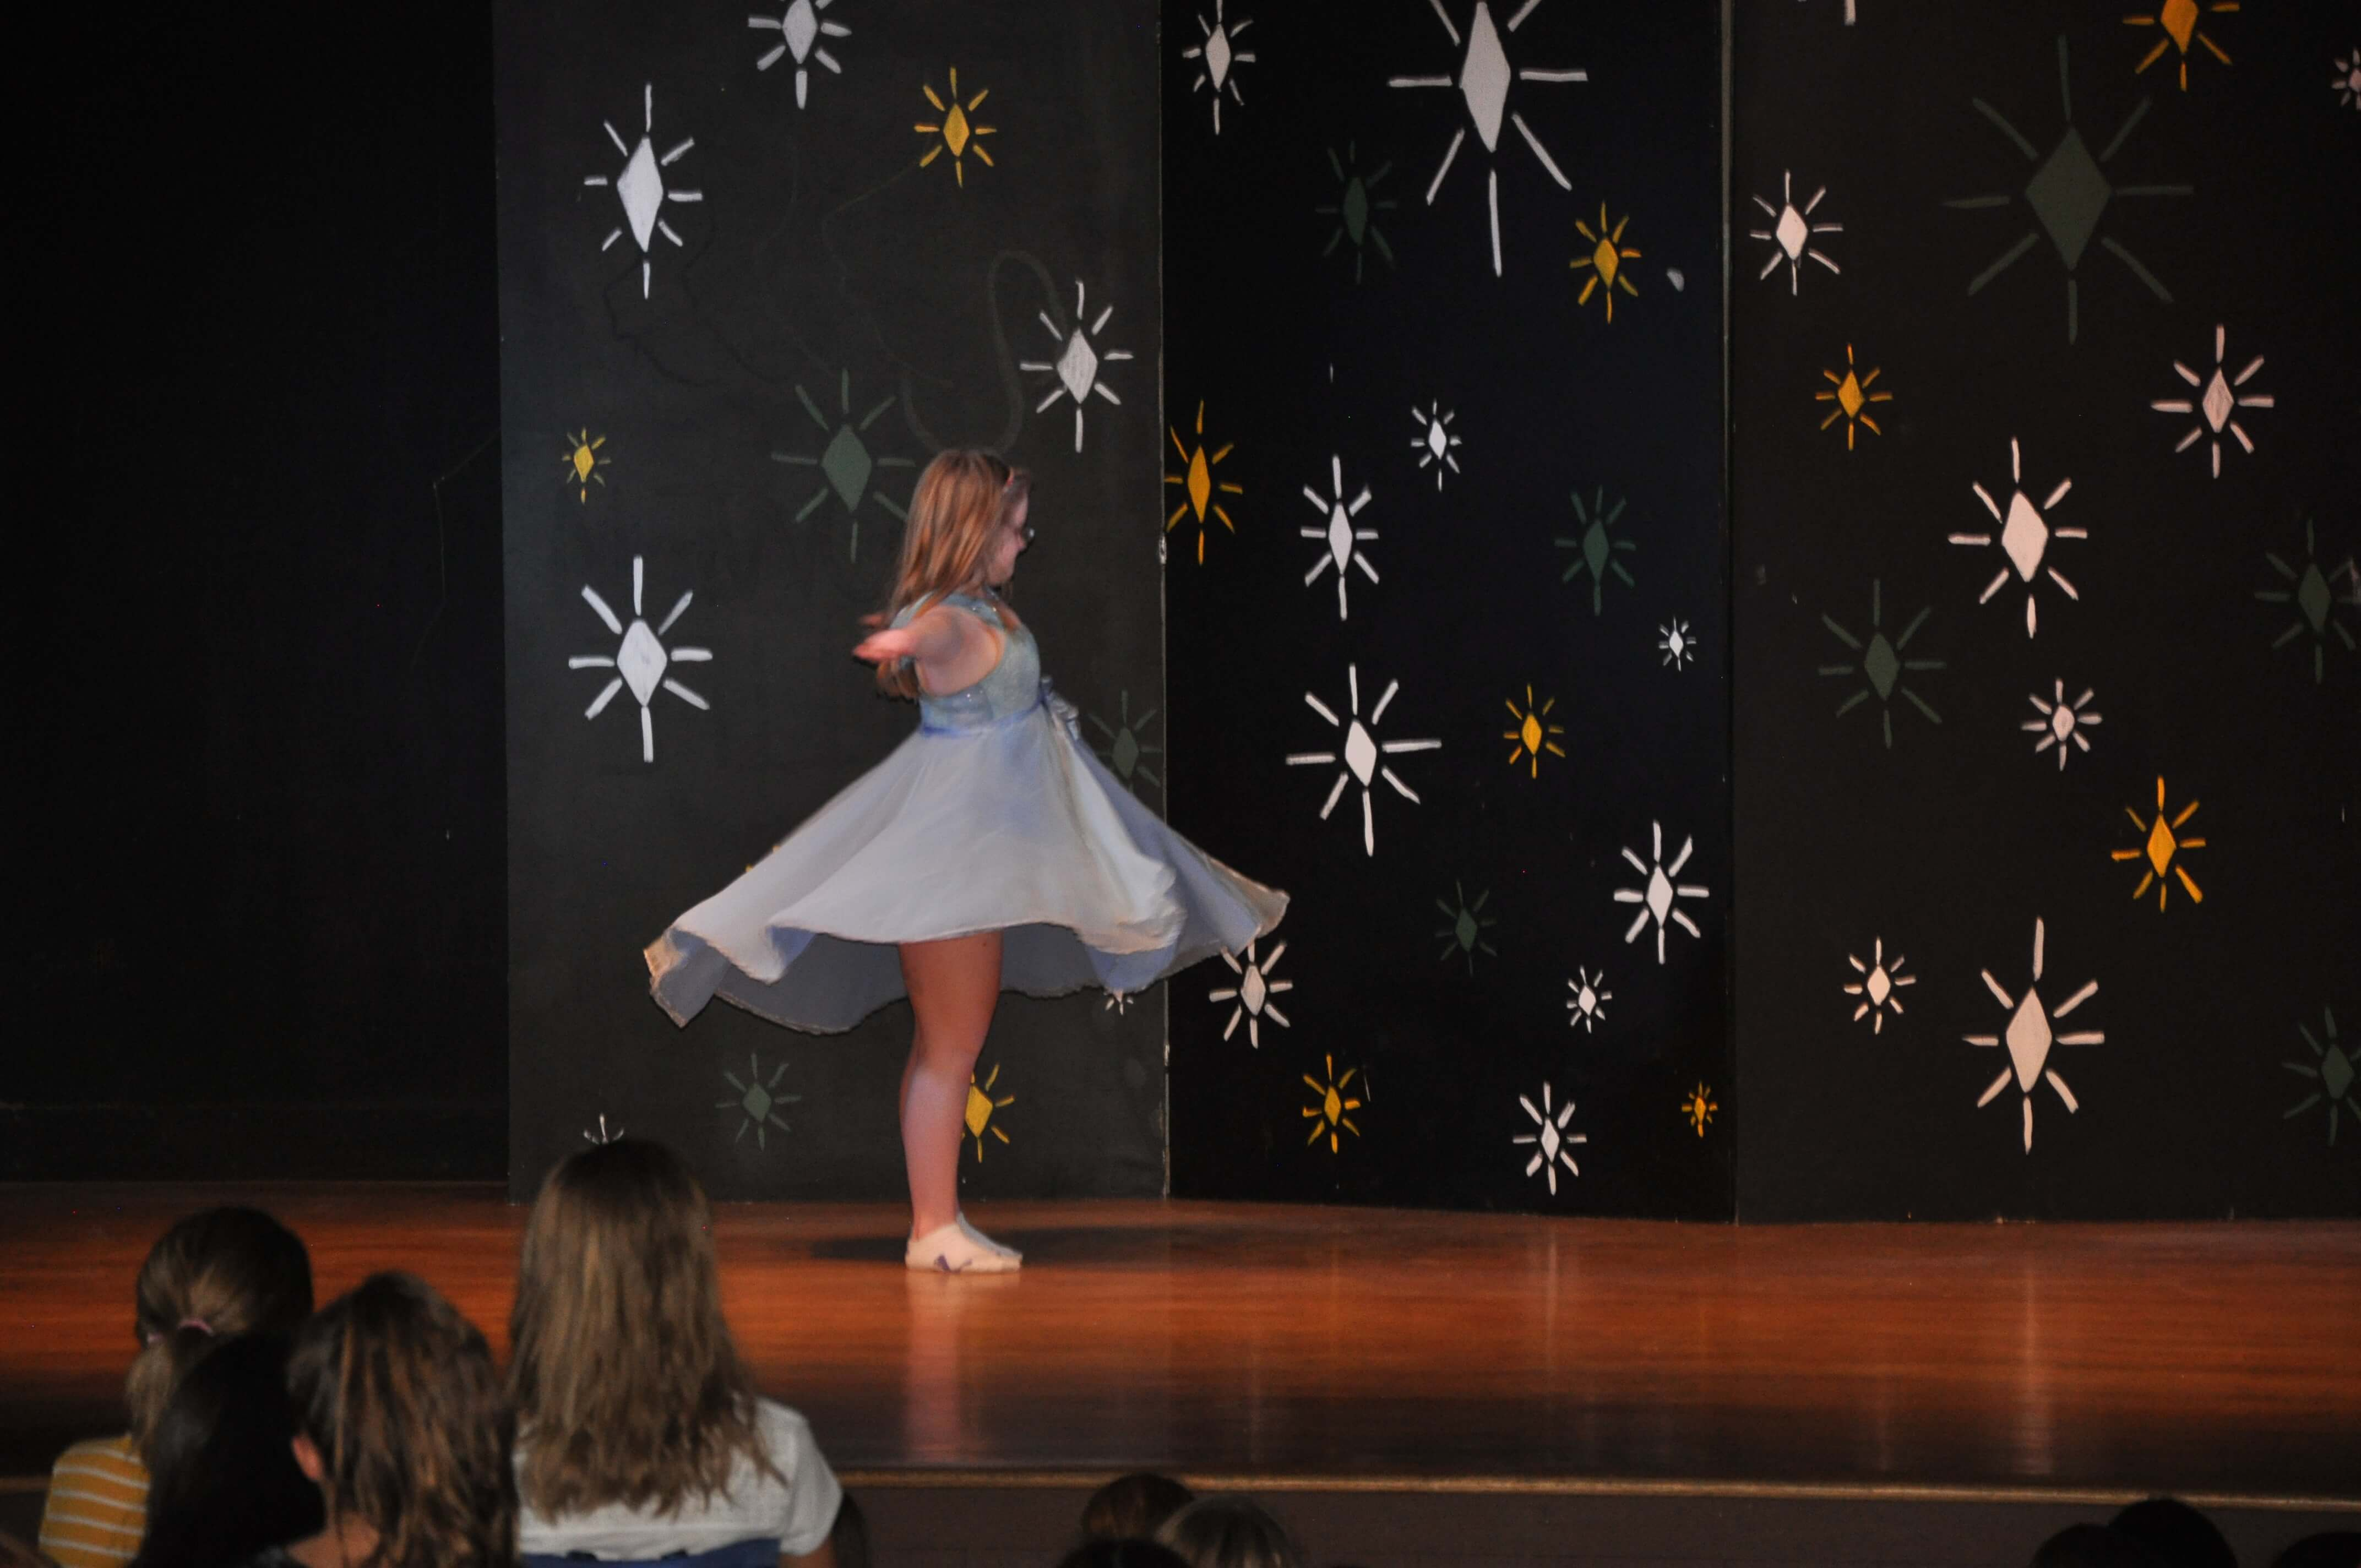 Lele's solo performance at camp!